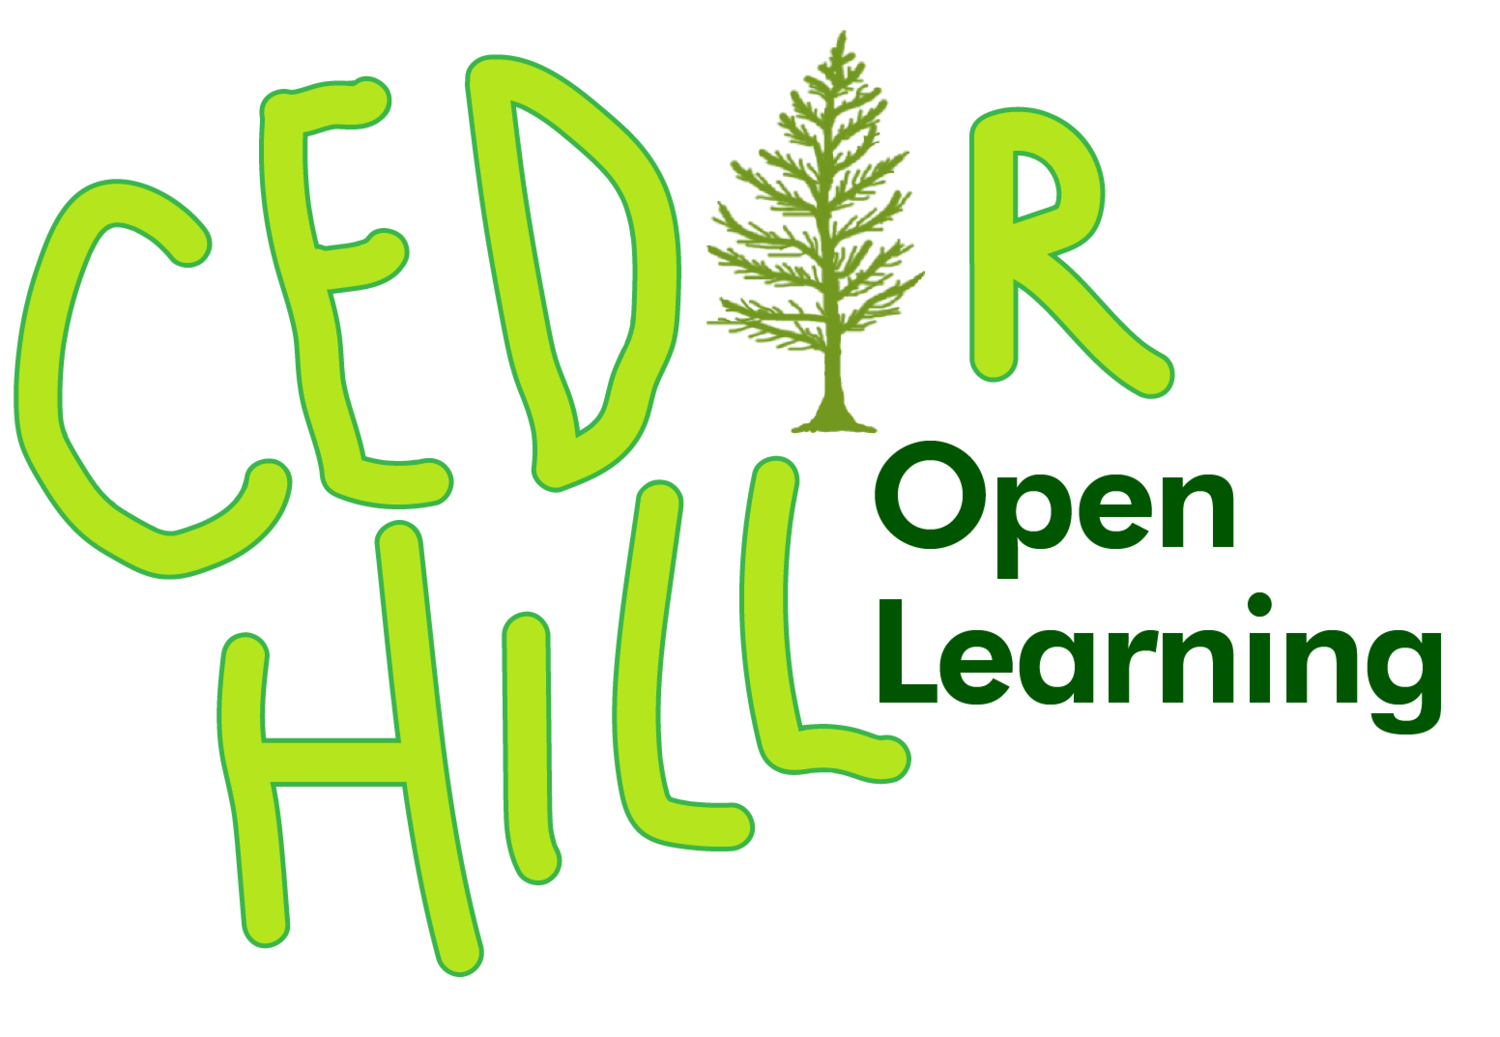 Cedar Hill Open Learning